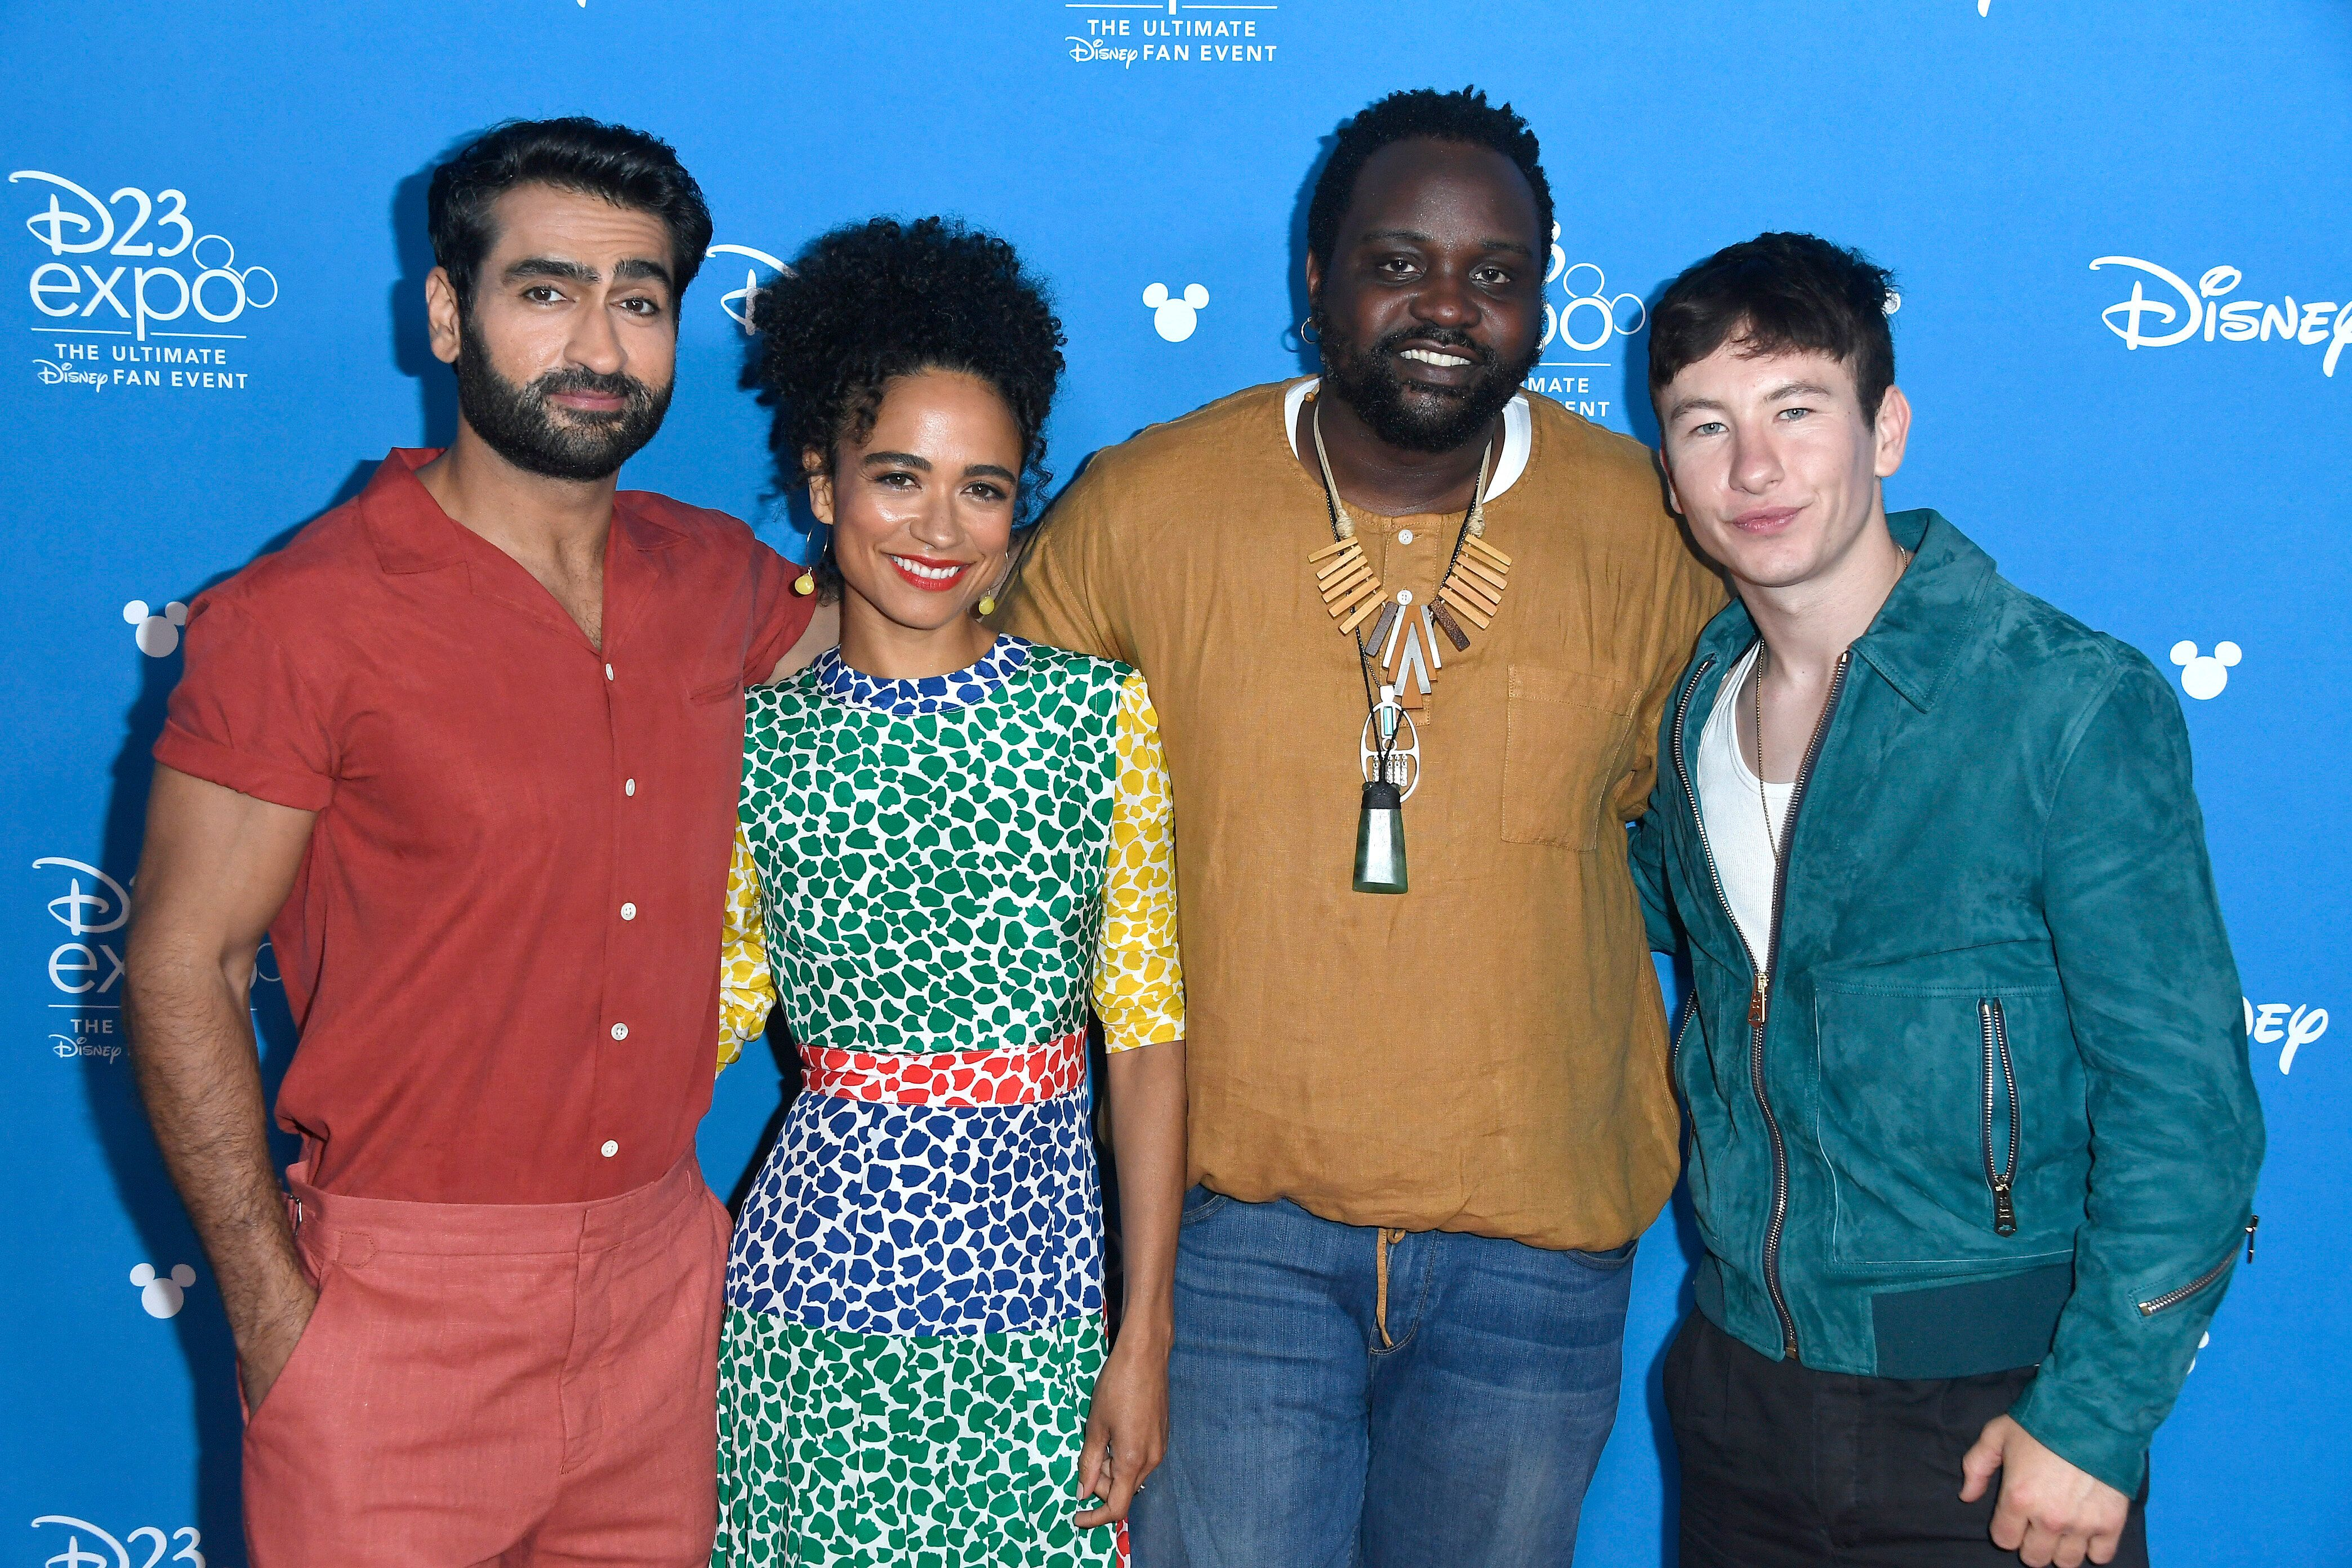 Actors Kumail Nanjiani, Lauren Ridloff, Brian Tyree Henry and Barry Keoghan attend Go Behind the Scenes with Walt Disney Stud